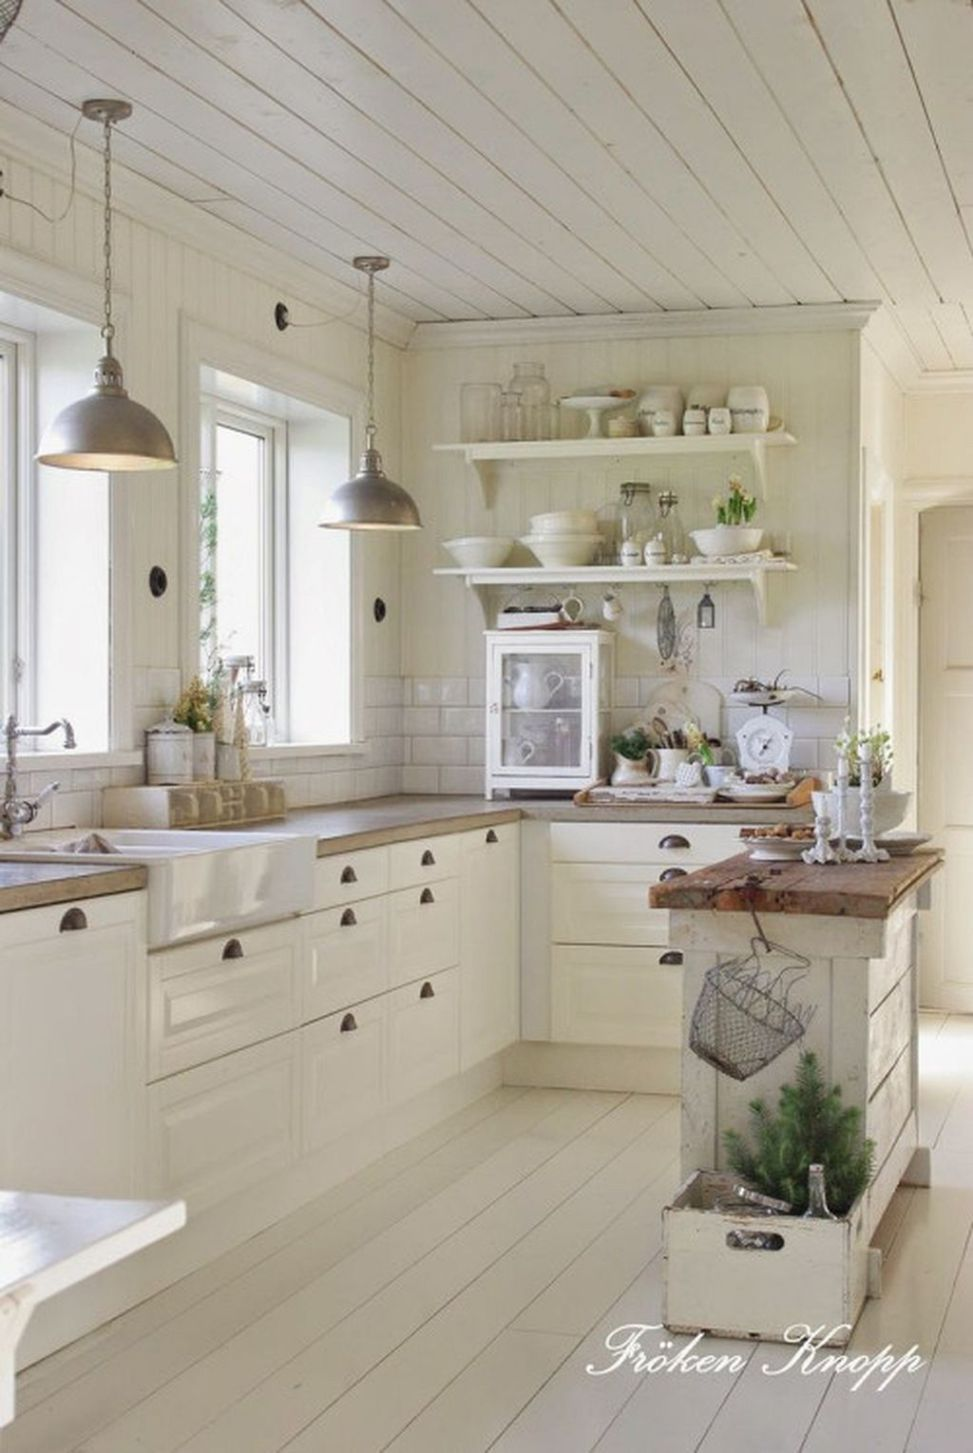 50 Incredible Beach House Kitchen Ideas 5 | Kitchen cabinets and ...